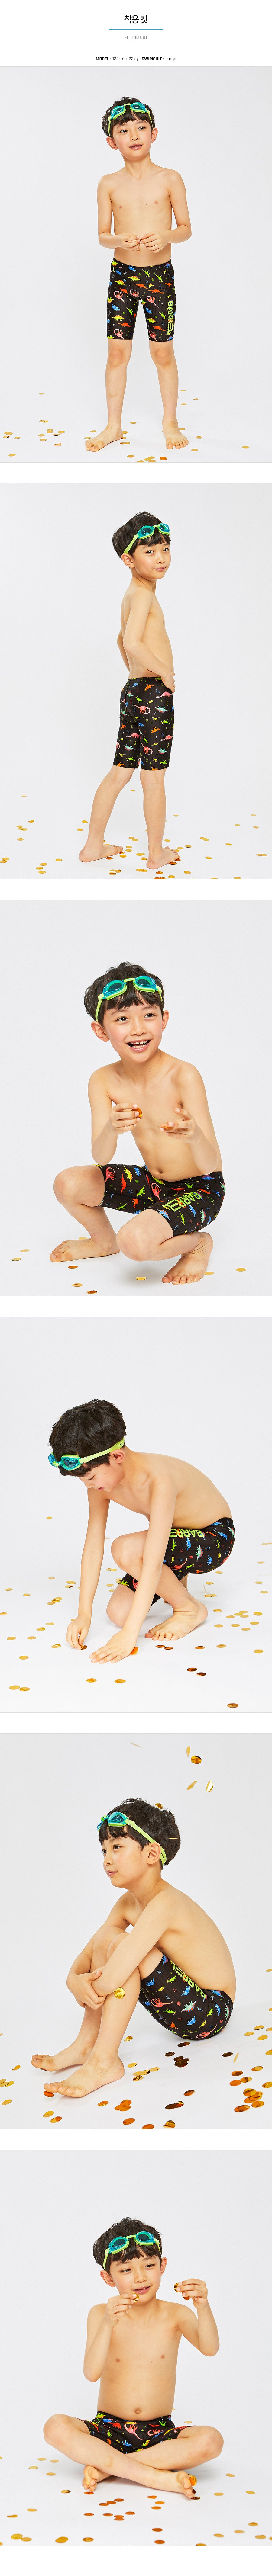 Barrel Kids Training Pattern Jammer Swimsuit-NEON DINO_image